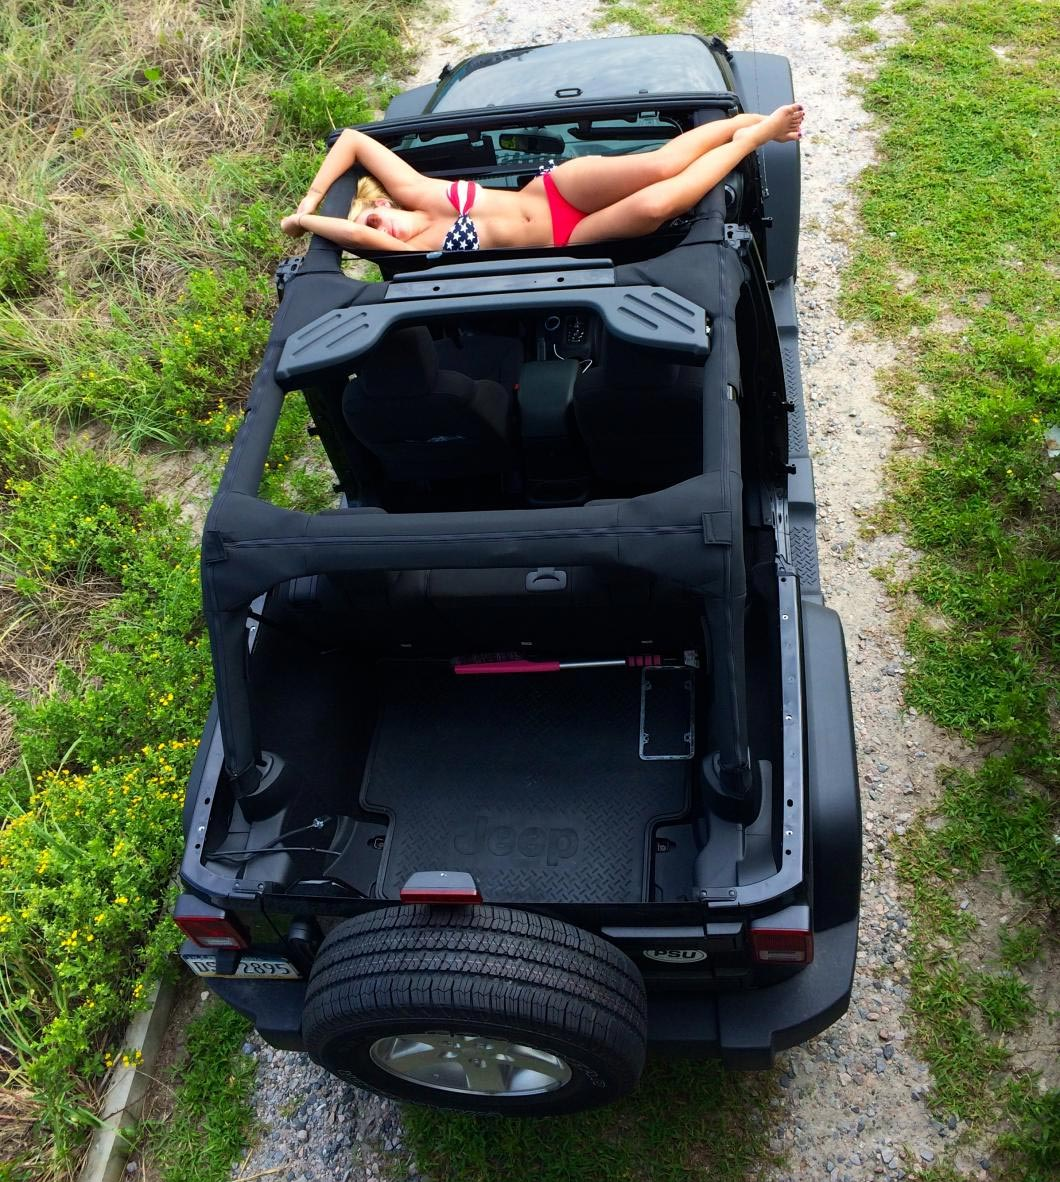 trailer hitch chair 1998 f150 stereo wiring diagram jammock jeep or truck hammock dudeiwantthat